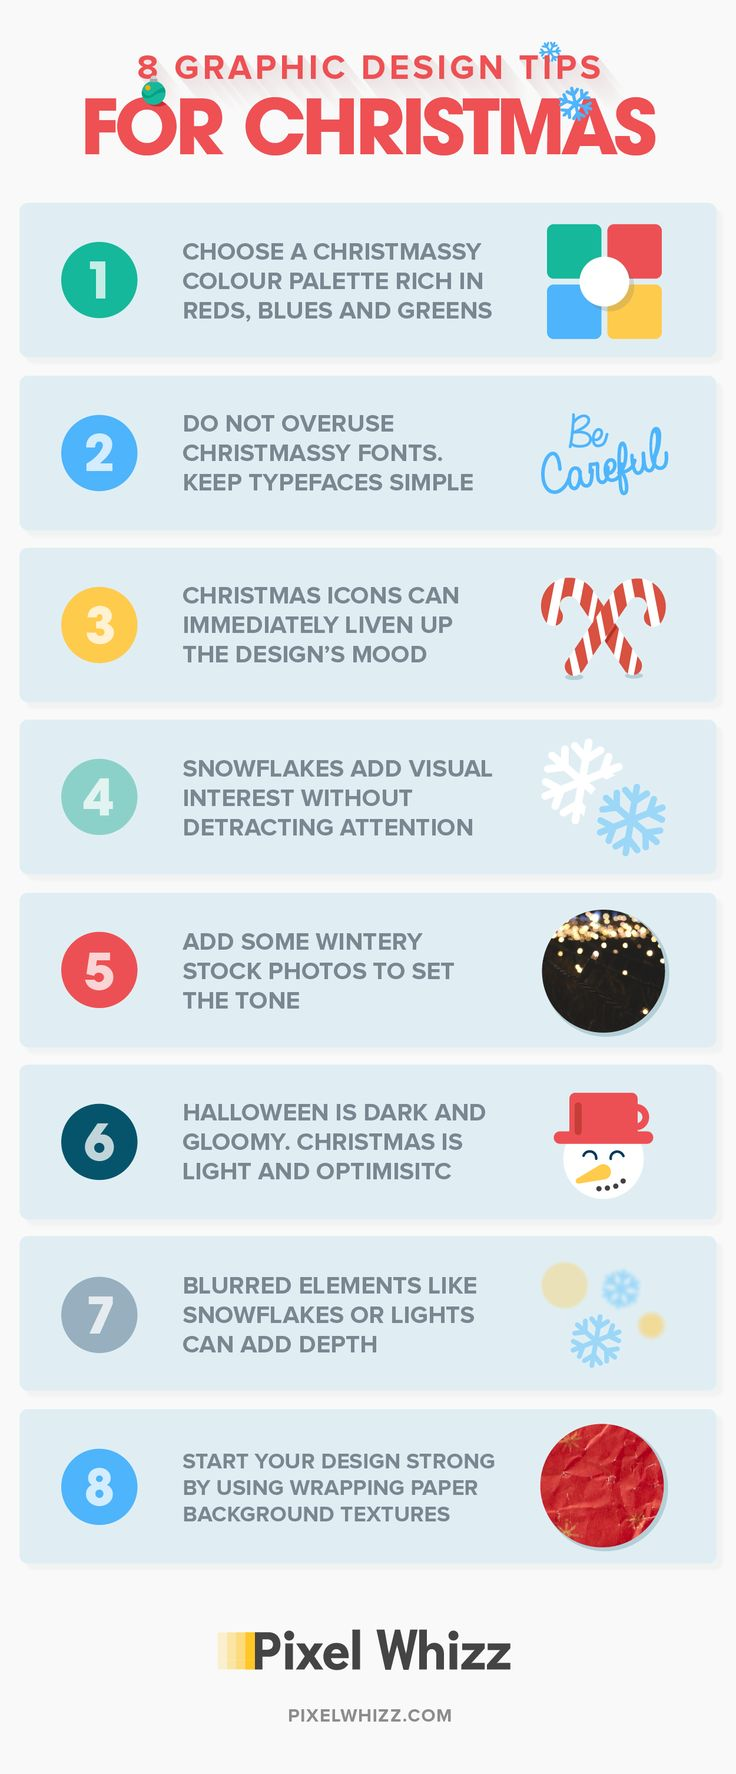 Christmas is just a few weeks away! Dramatically improve your website's design before the holidays! This infographic and collection of simple christmas graphic design tips is just for you!